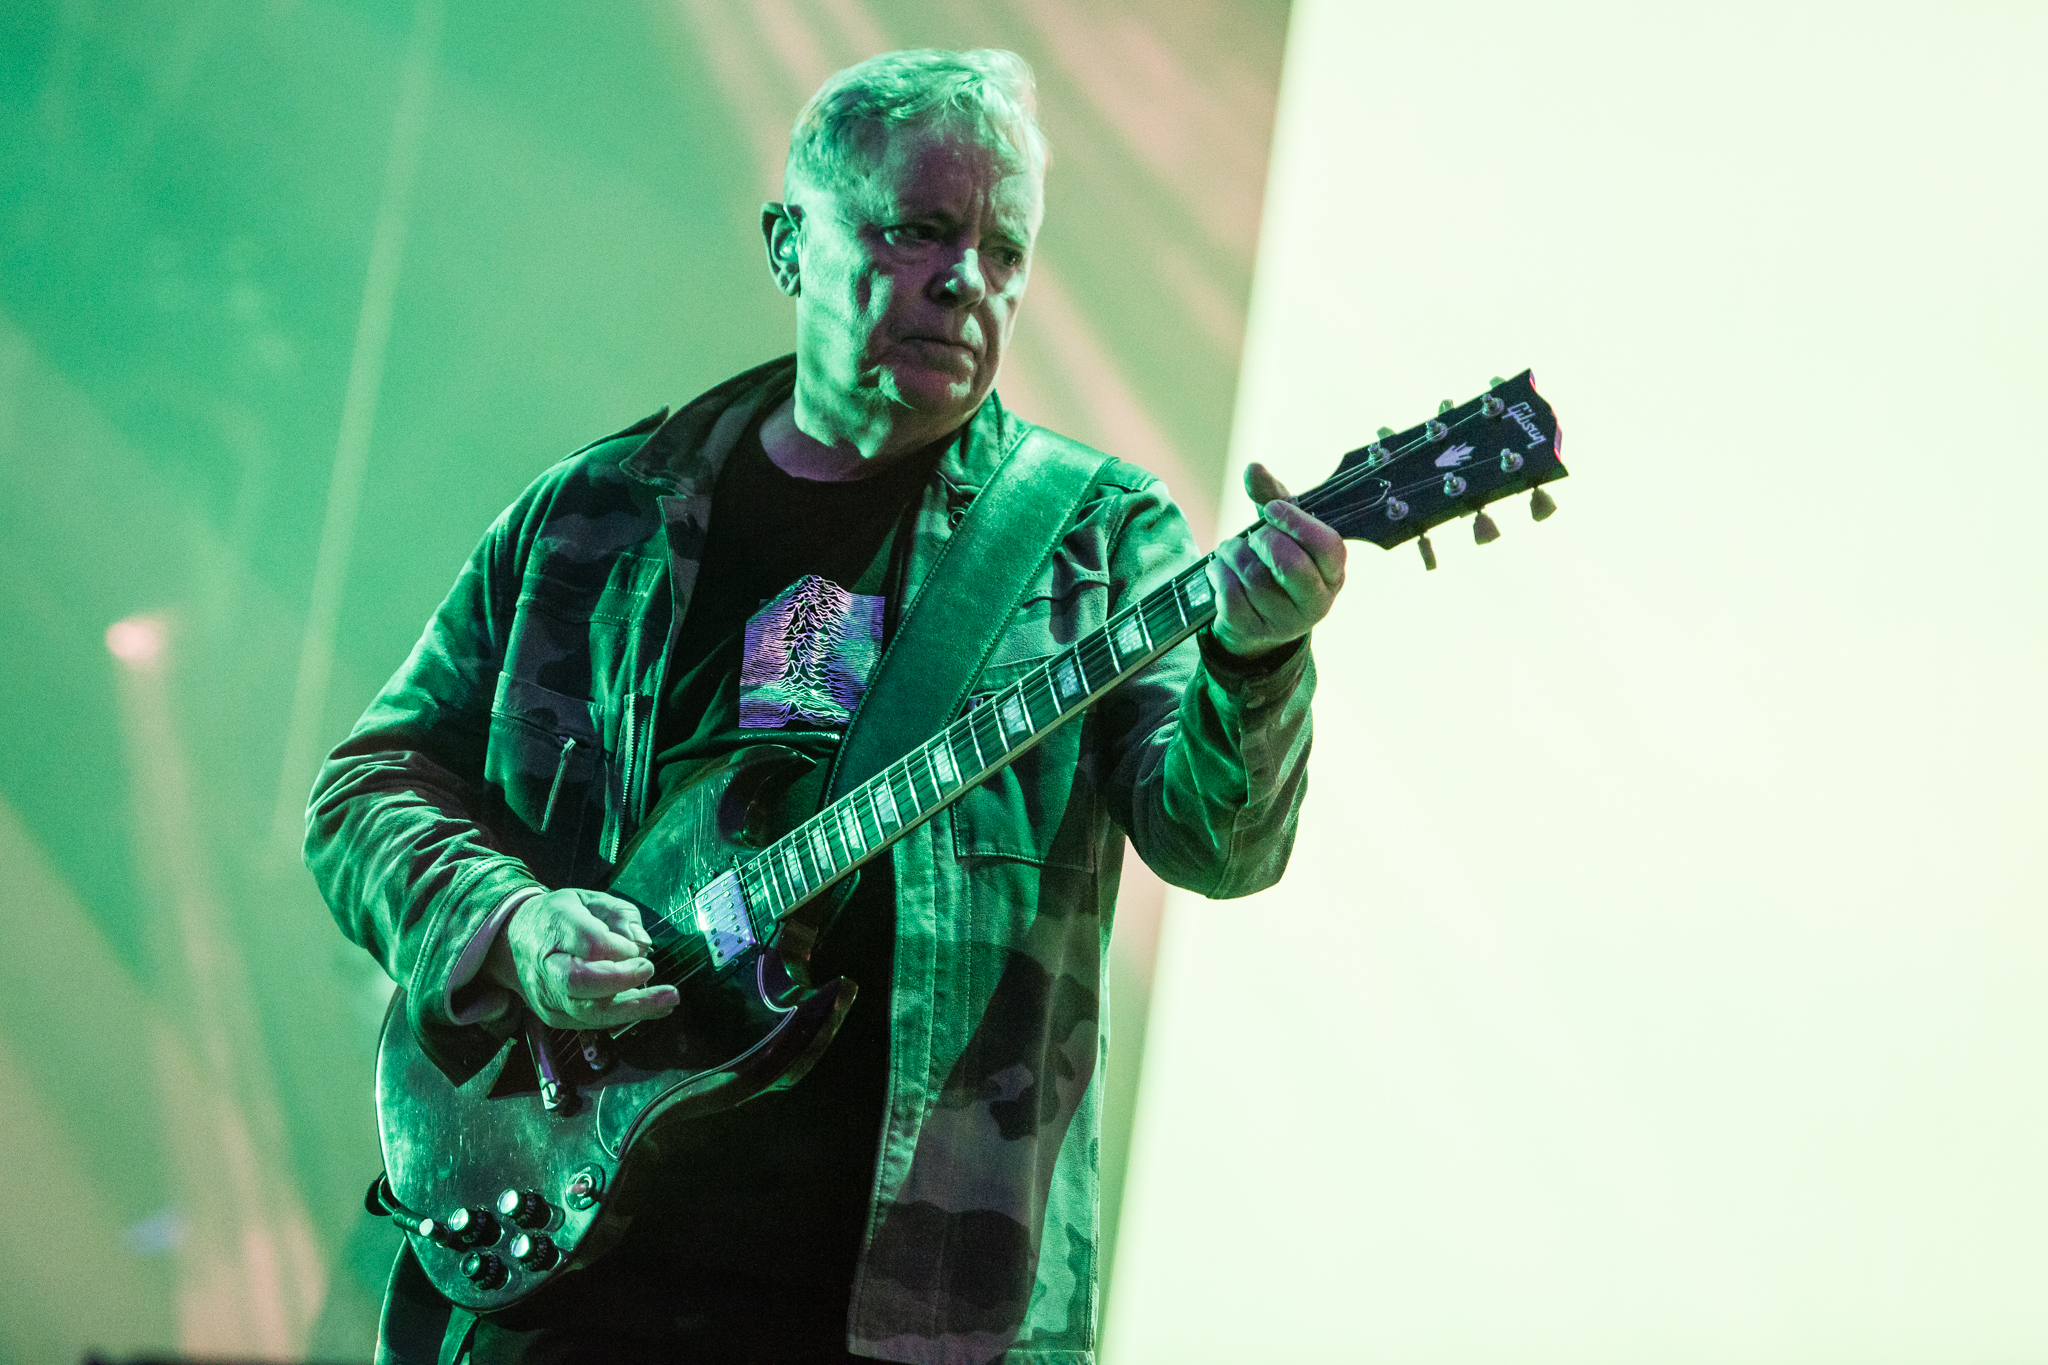 03 New Order - Bluedot 2019 - Jon Mo